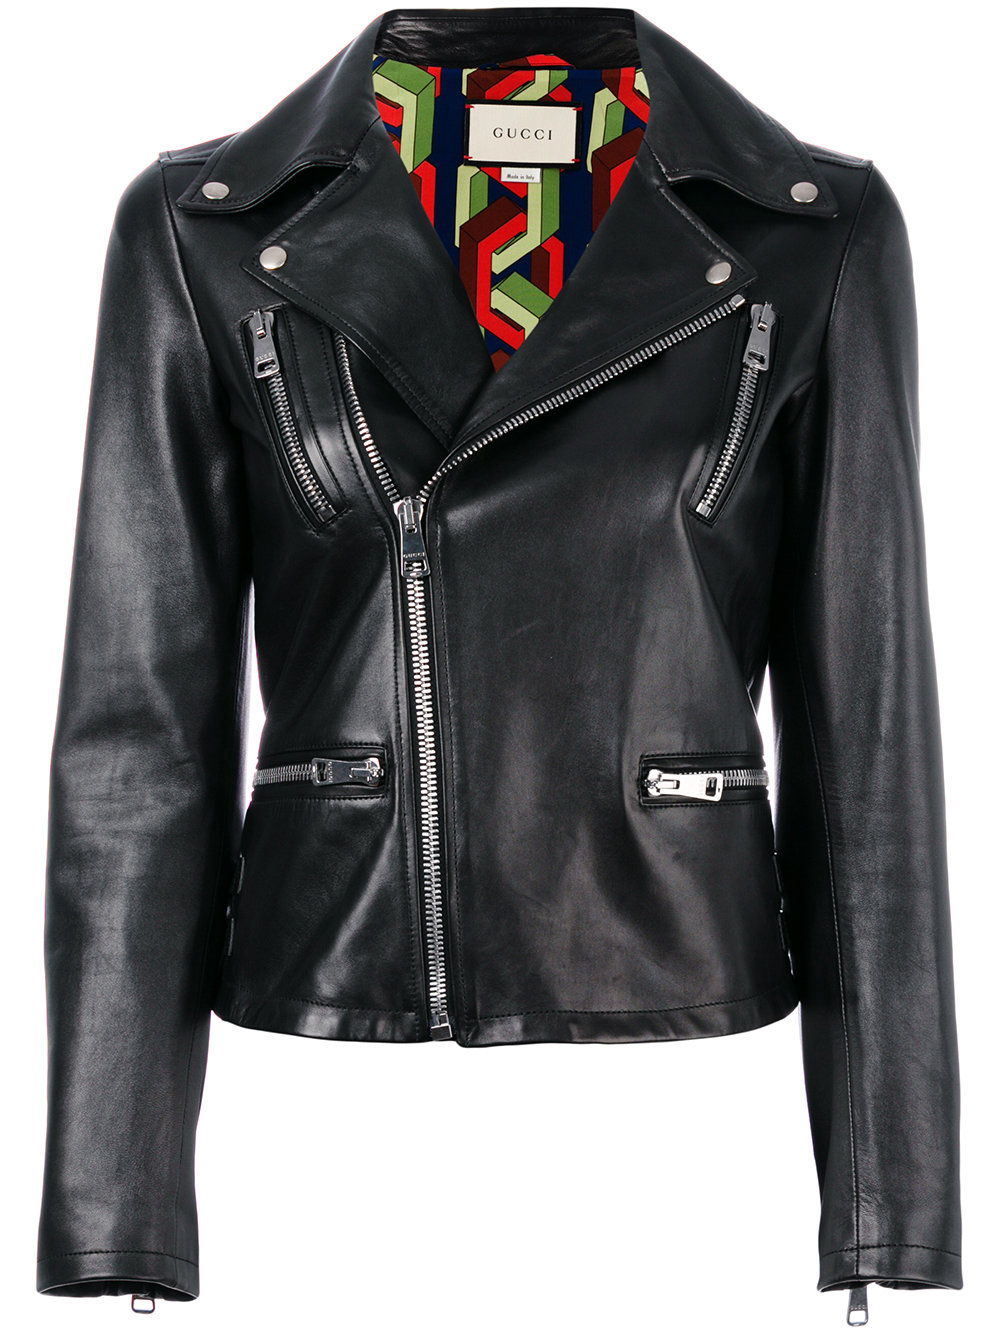 Gucci Angry Cat Embroidered Leather Jacket - Farfetch